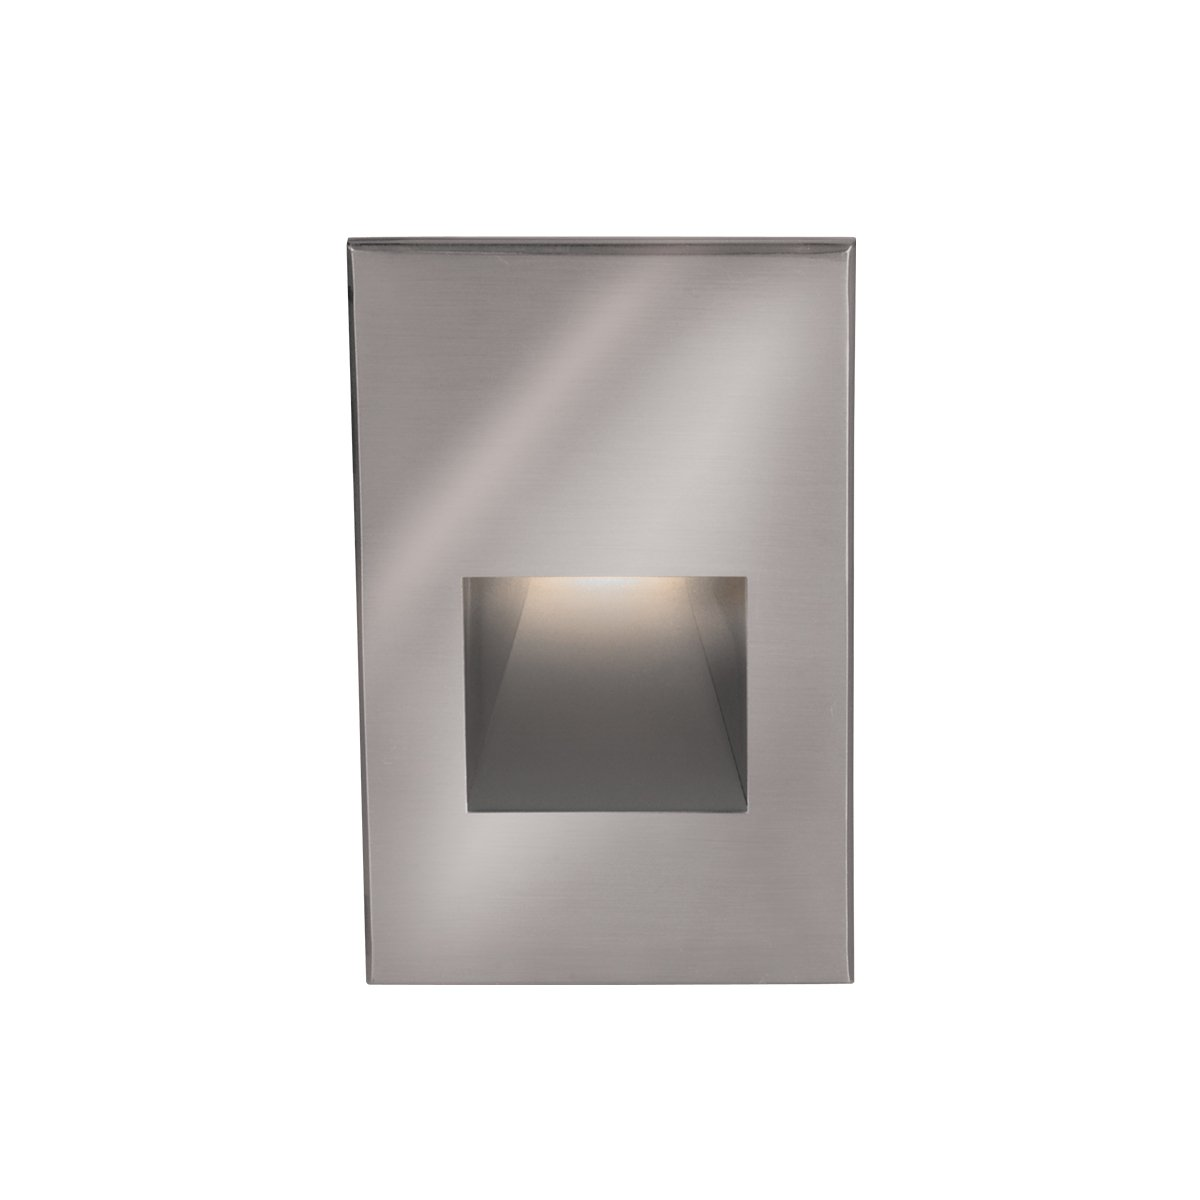 WAC Lighting WL LED200 C SS Vertical Scoop 4W 120V LED Step Wall Light with  Cool White Lens and Marine Grade 316 Stainless Steel Finish   Track Lighting   WAC Lighting WL LED200 C SS Vertical Scoop 4W 120V LED Step Wall  . Marine Grade Stainless Steel Outdoor Wall Lights. Home Design Ideas